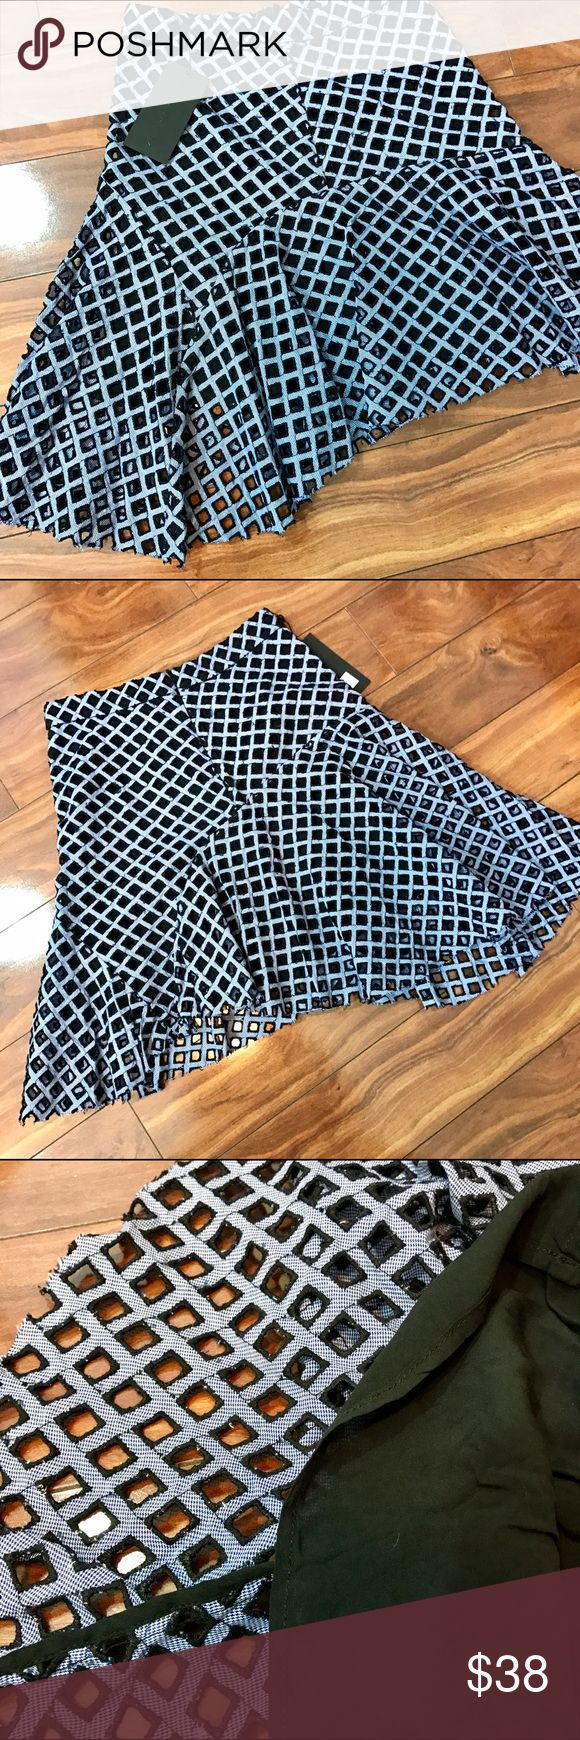 Kendall & Kylie asymmetrical skirt. NWT Very cool K&K open weave skirt is lined, with back zipper. Asymmetrical hem line is the wow factor. Tag says blue but I think it looks more lavender and black. Smoke free home Kendall & Kylie Skirts Midi